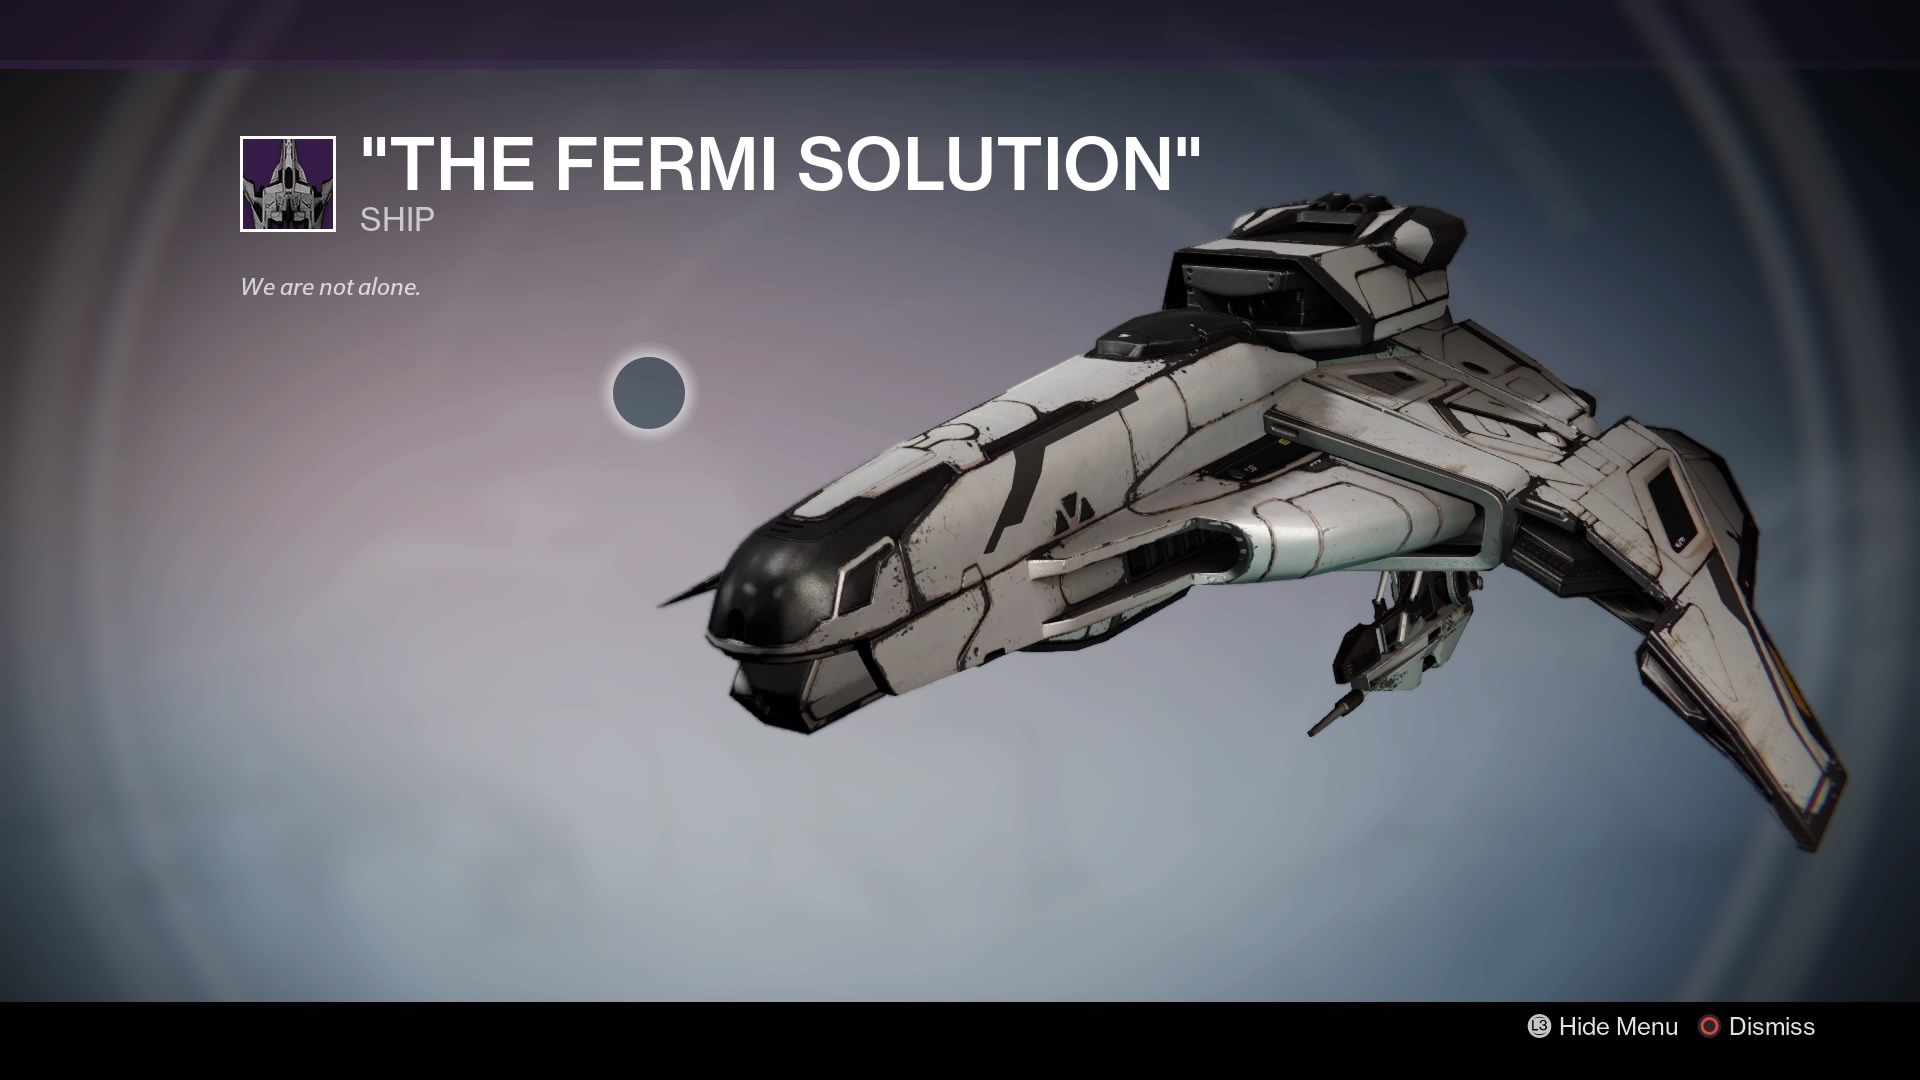 The Fermi Solution